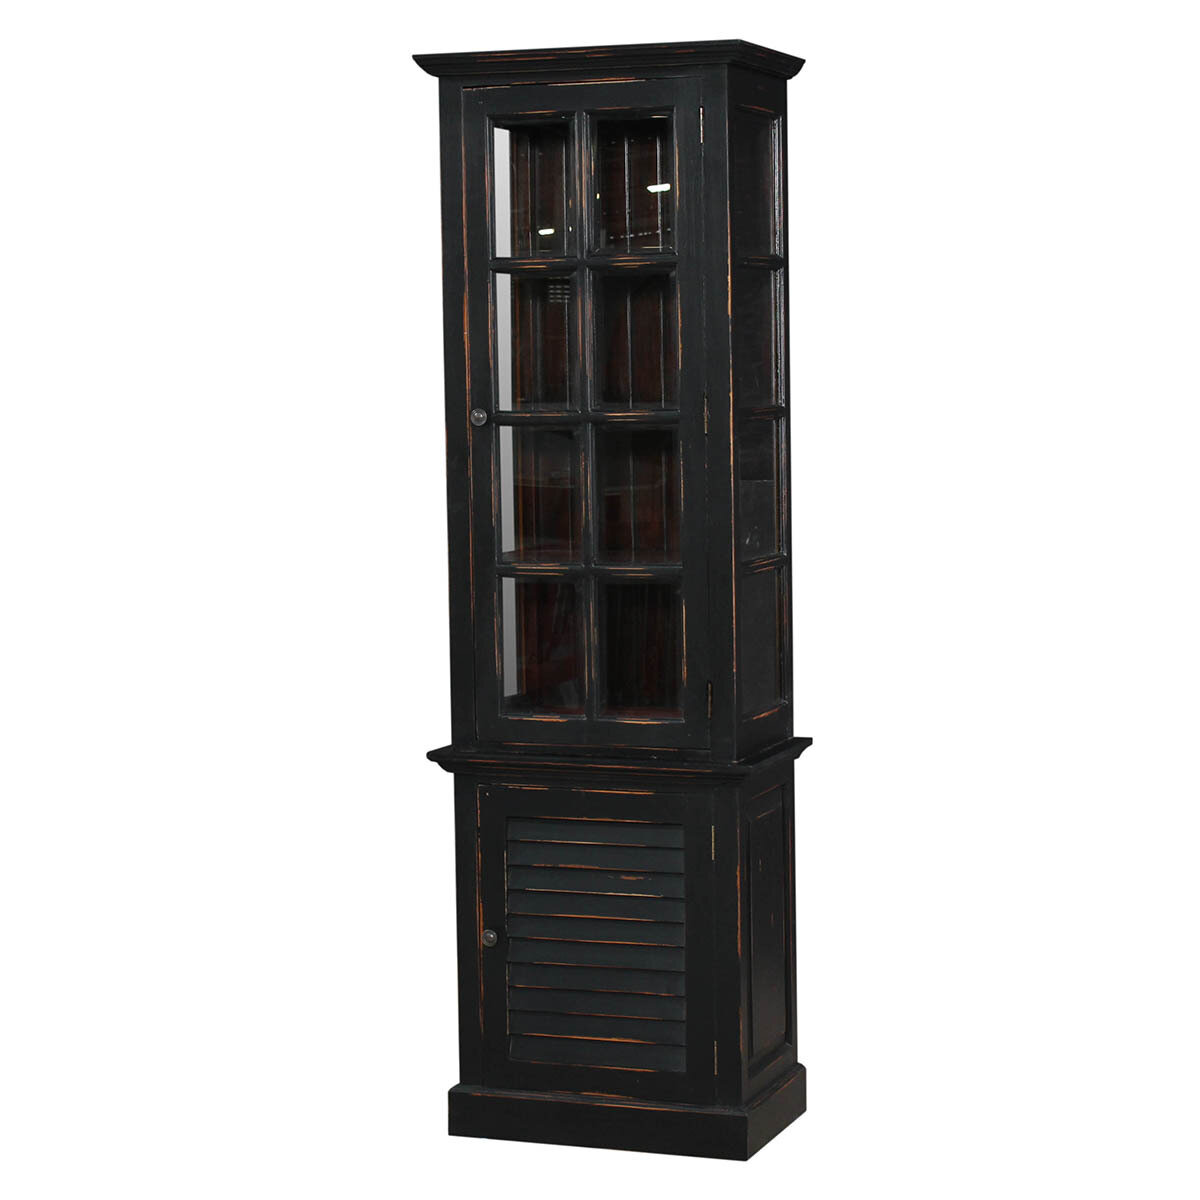 Cottage Black Harvest Tall Cabinet w/Glass